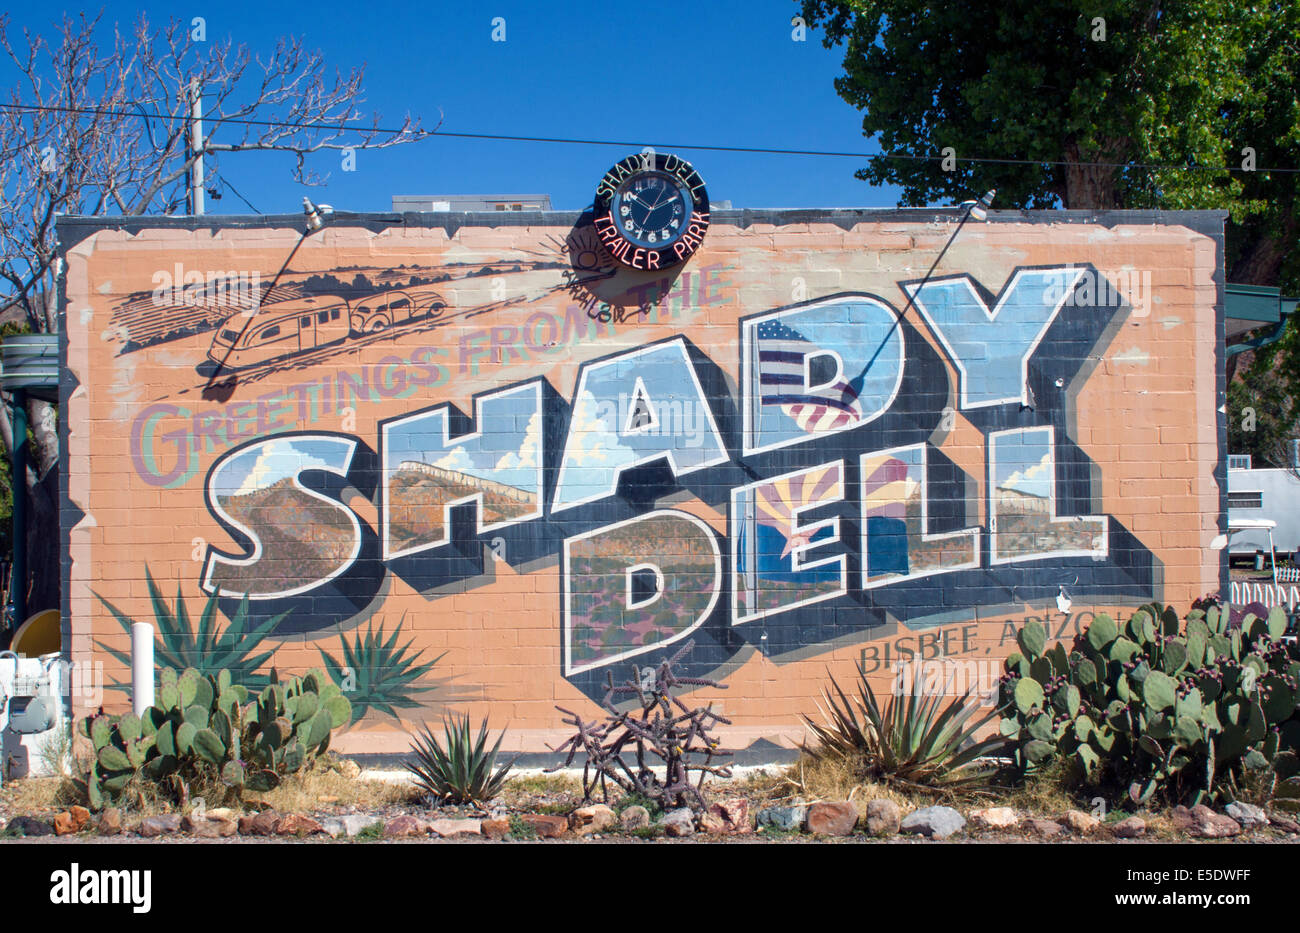 Shady Dell retro mobile home park in Bisbee Arizona Stock ... on trailer homes, aretha's homes, retro park model homes, vintage homes, retro buses, retro motorcycles, retro furniture, 900 square foot homes, retro tile, one level homes, retro boats,